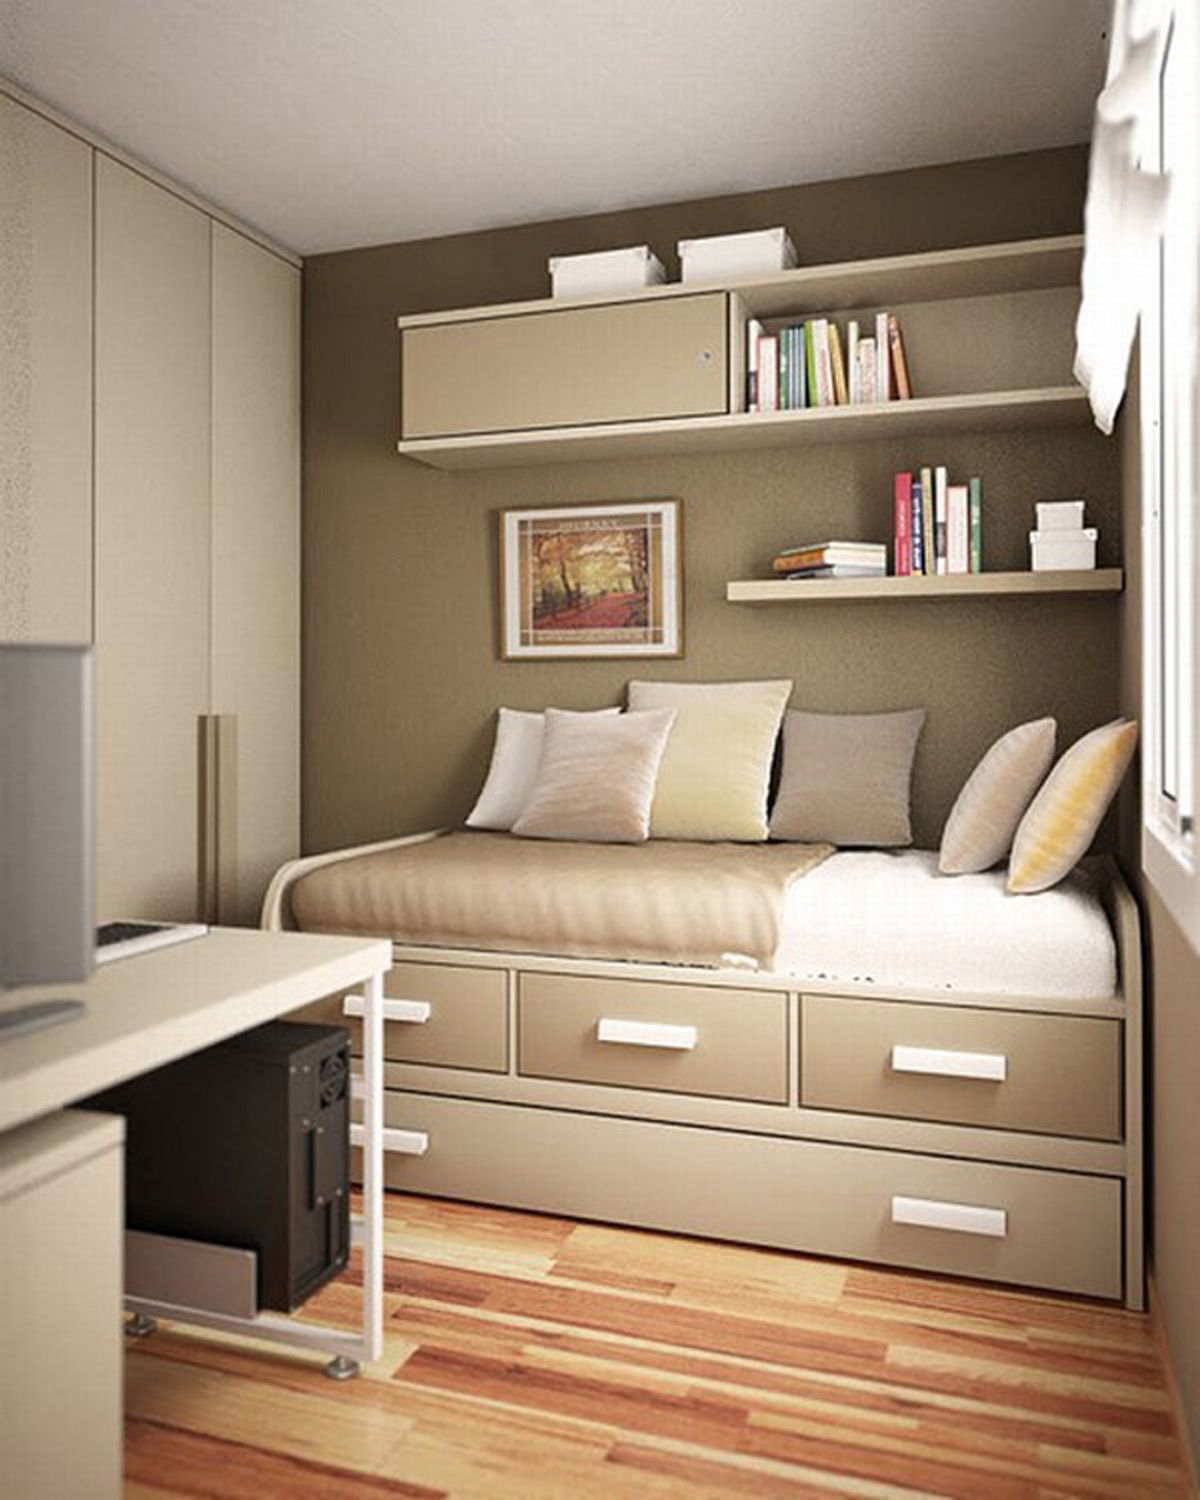 contemporary small bedroom ideas - Design Small Bedroom